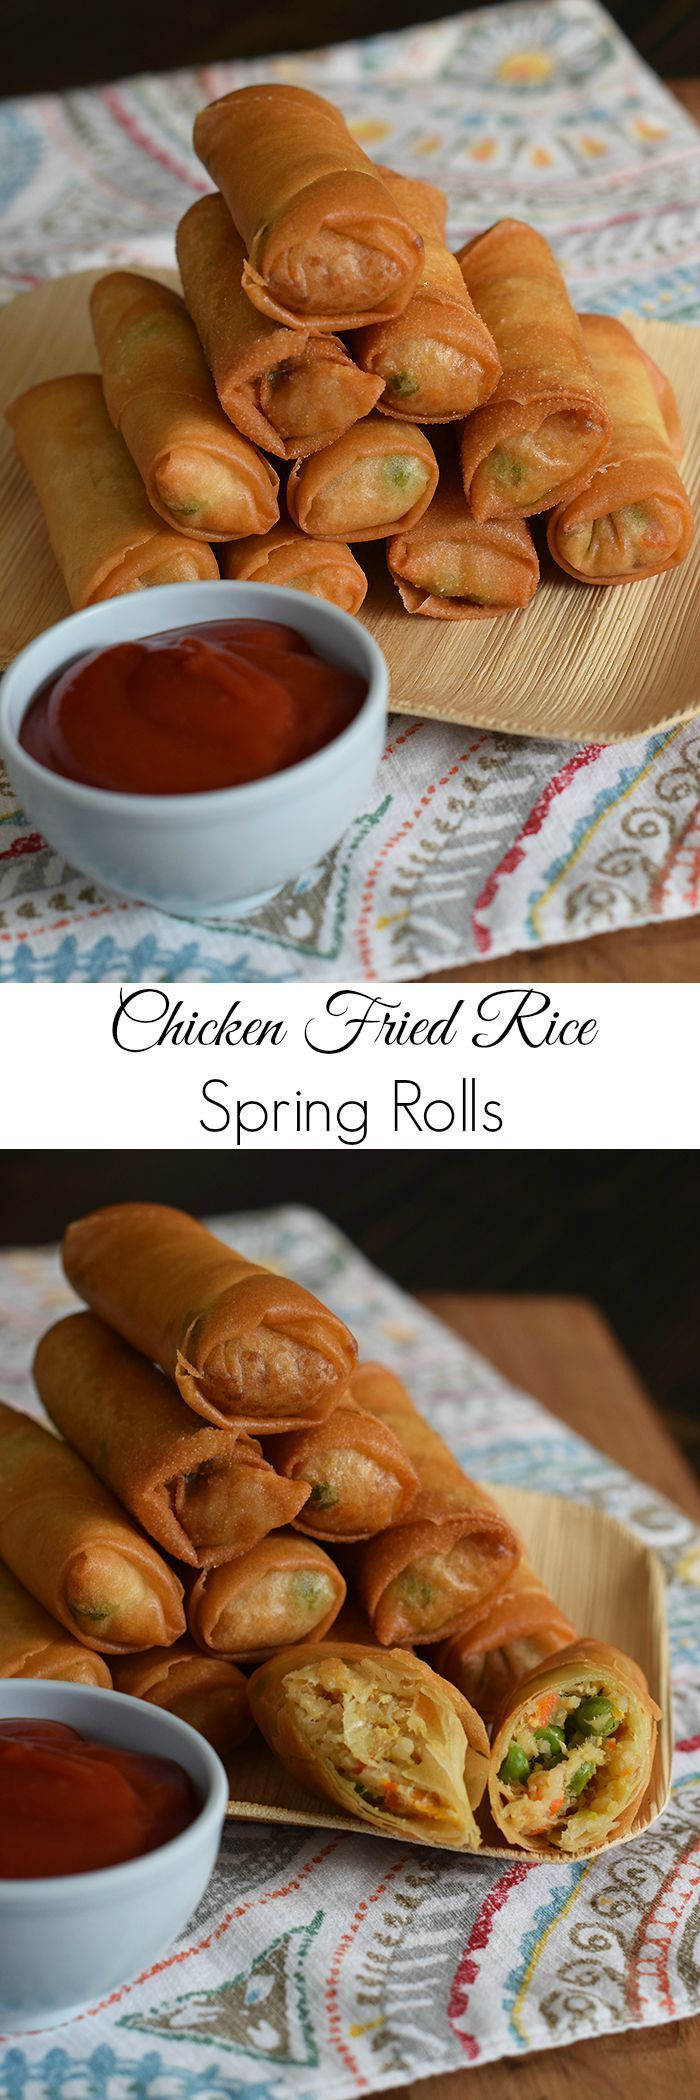 67 best egg rolls images on pinterest cooking food chinese food chicken fried rice is one of my favorite things to order when we go out to eat now we make it at home thanks to my husbands delicious recipe forumfinder Choice Image